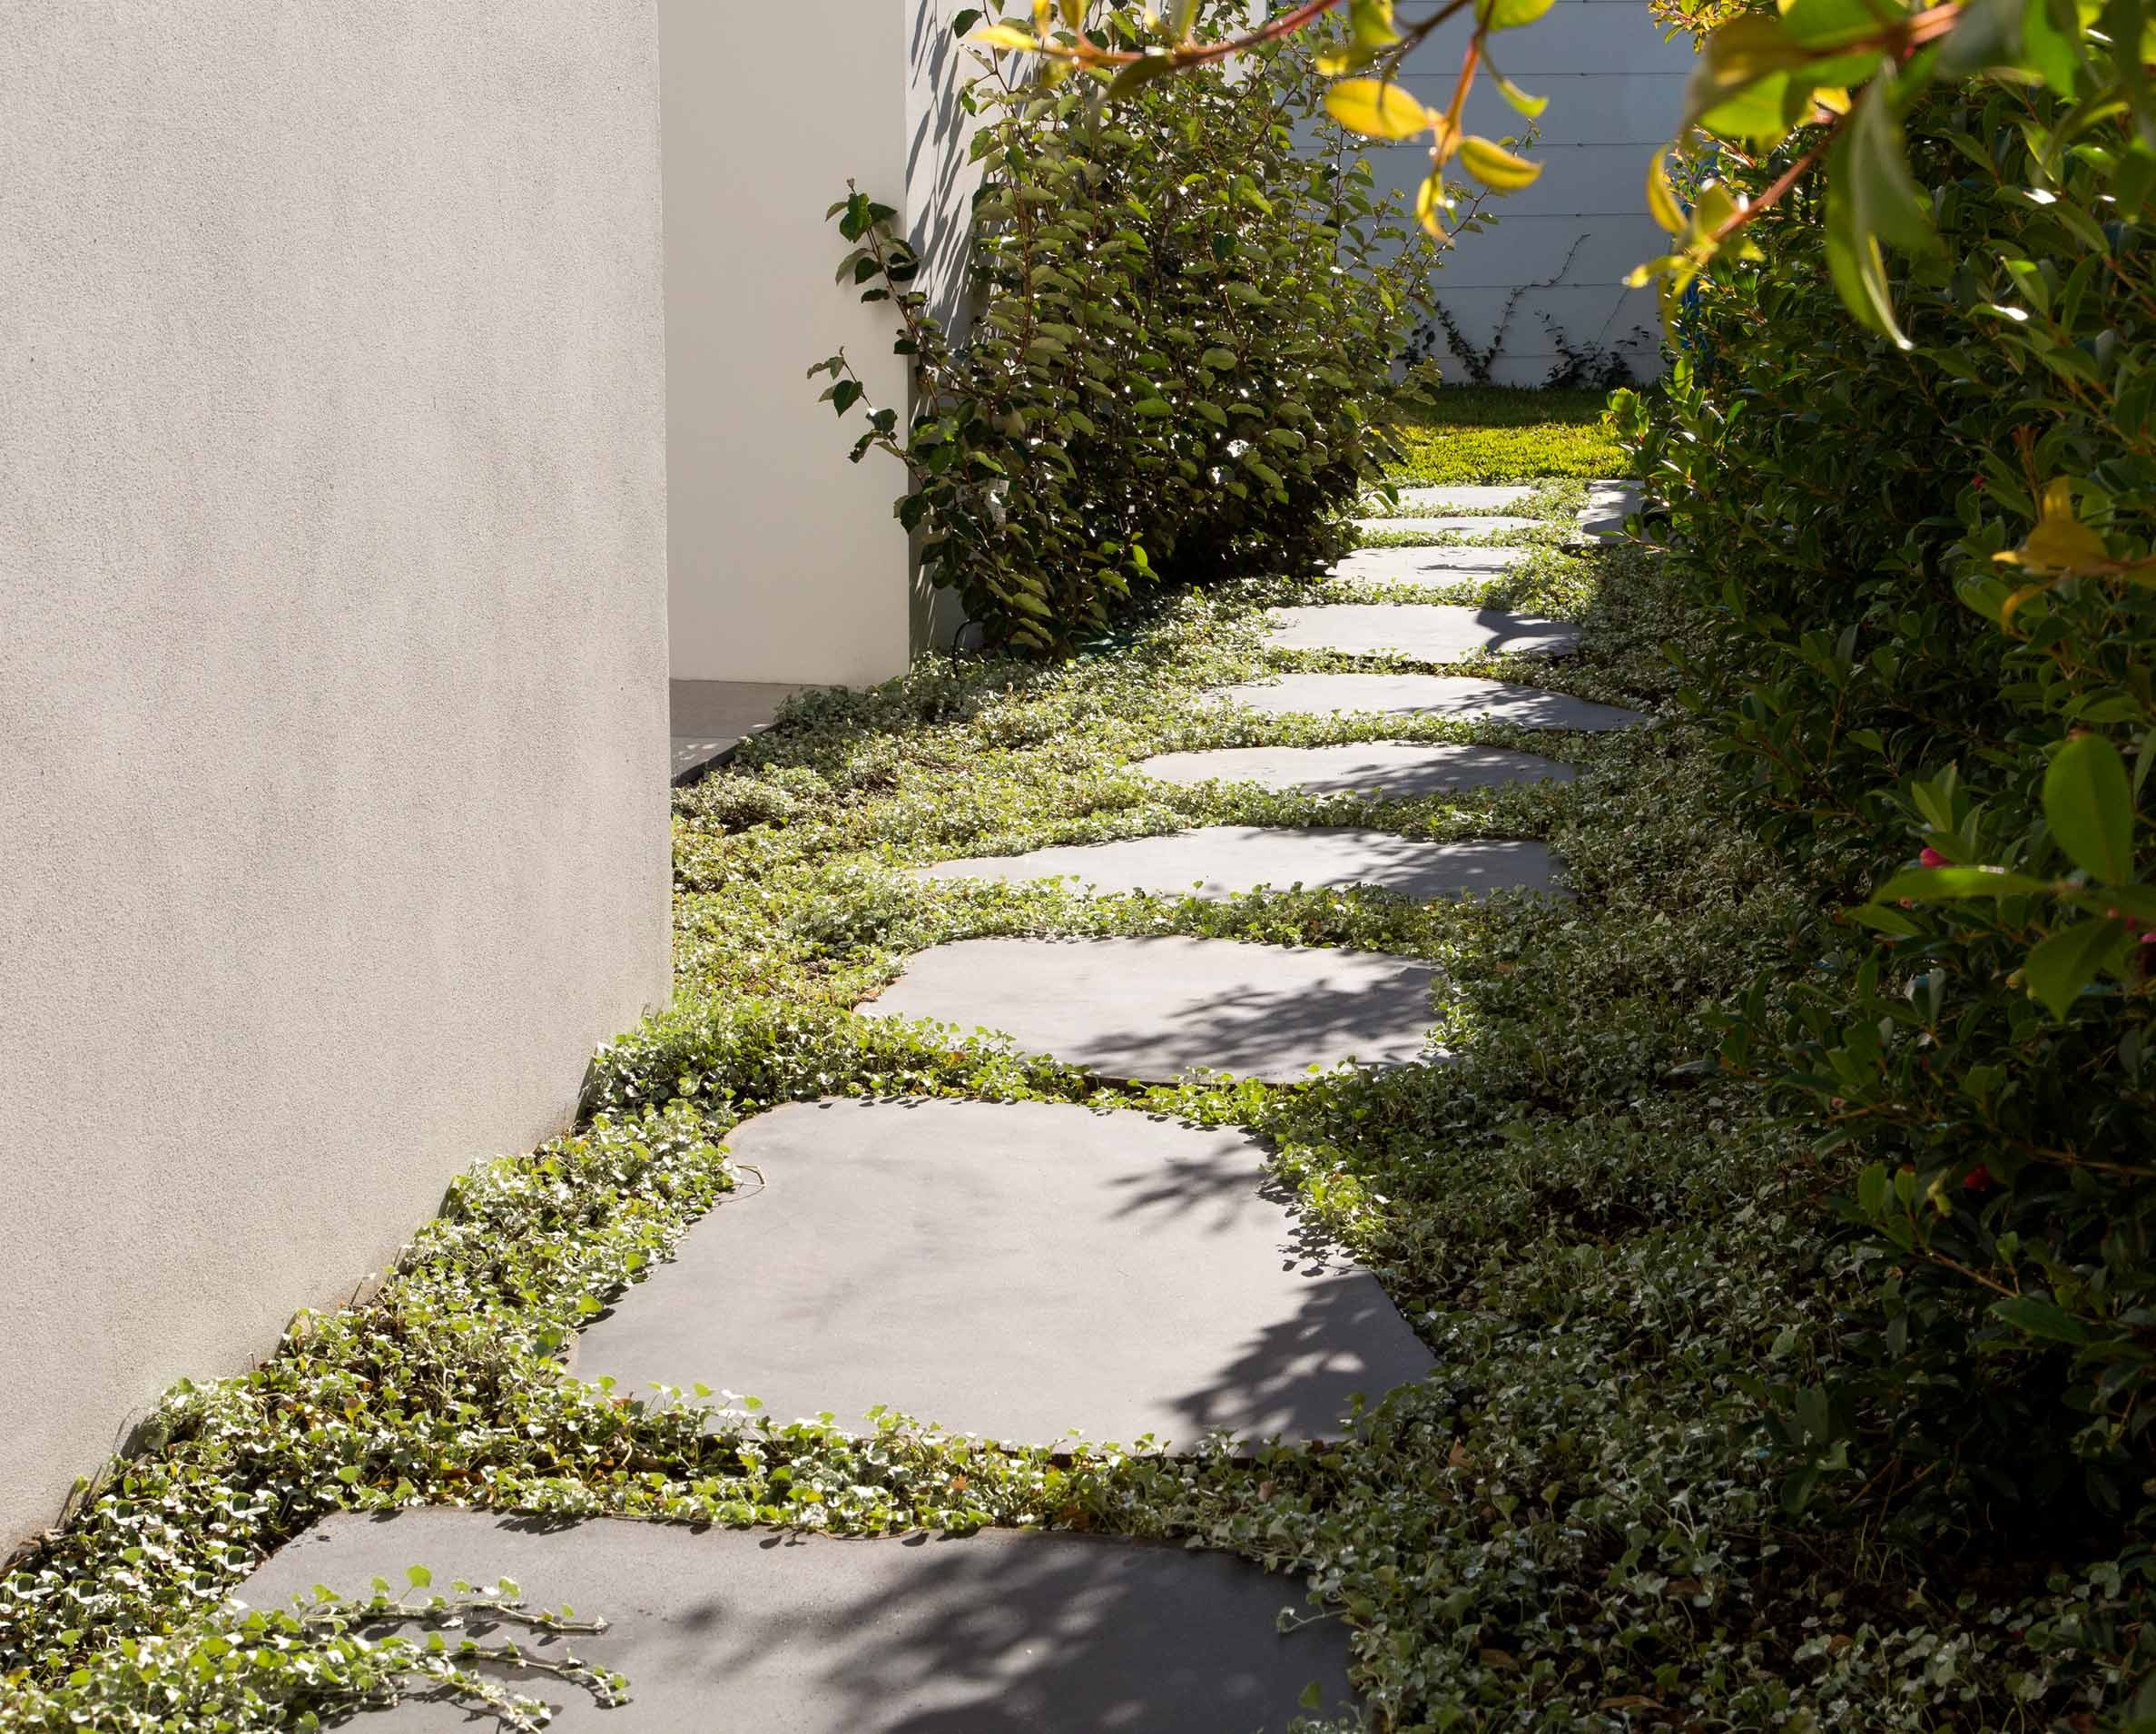 Products-Floor stepping-stones-organic-and-circular